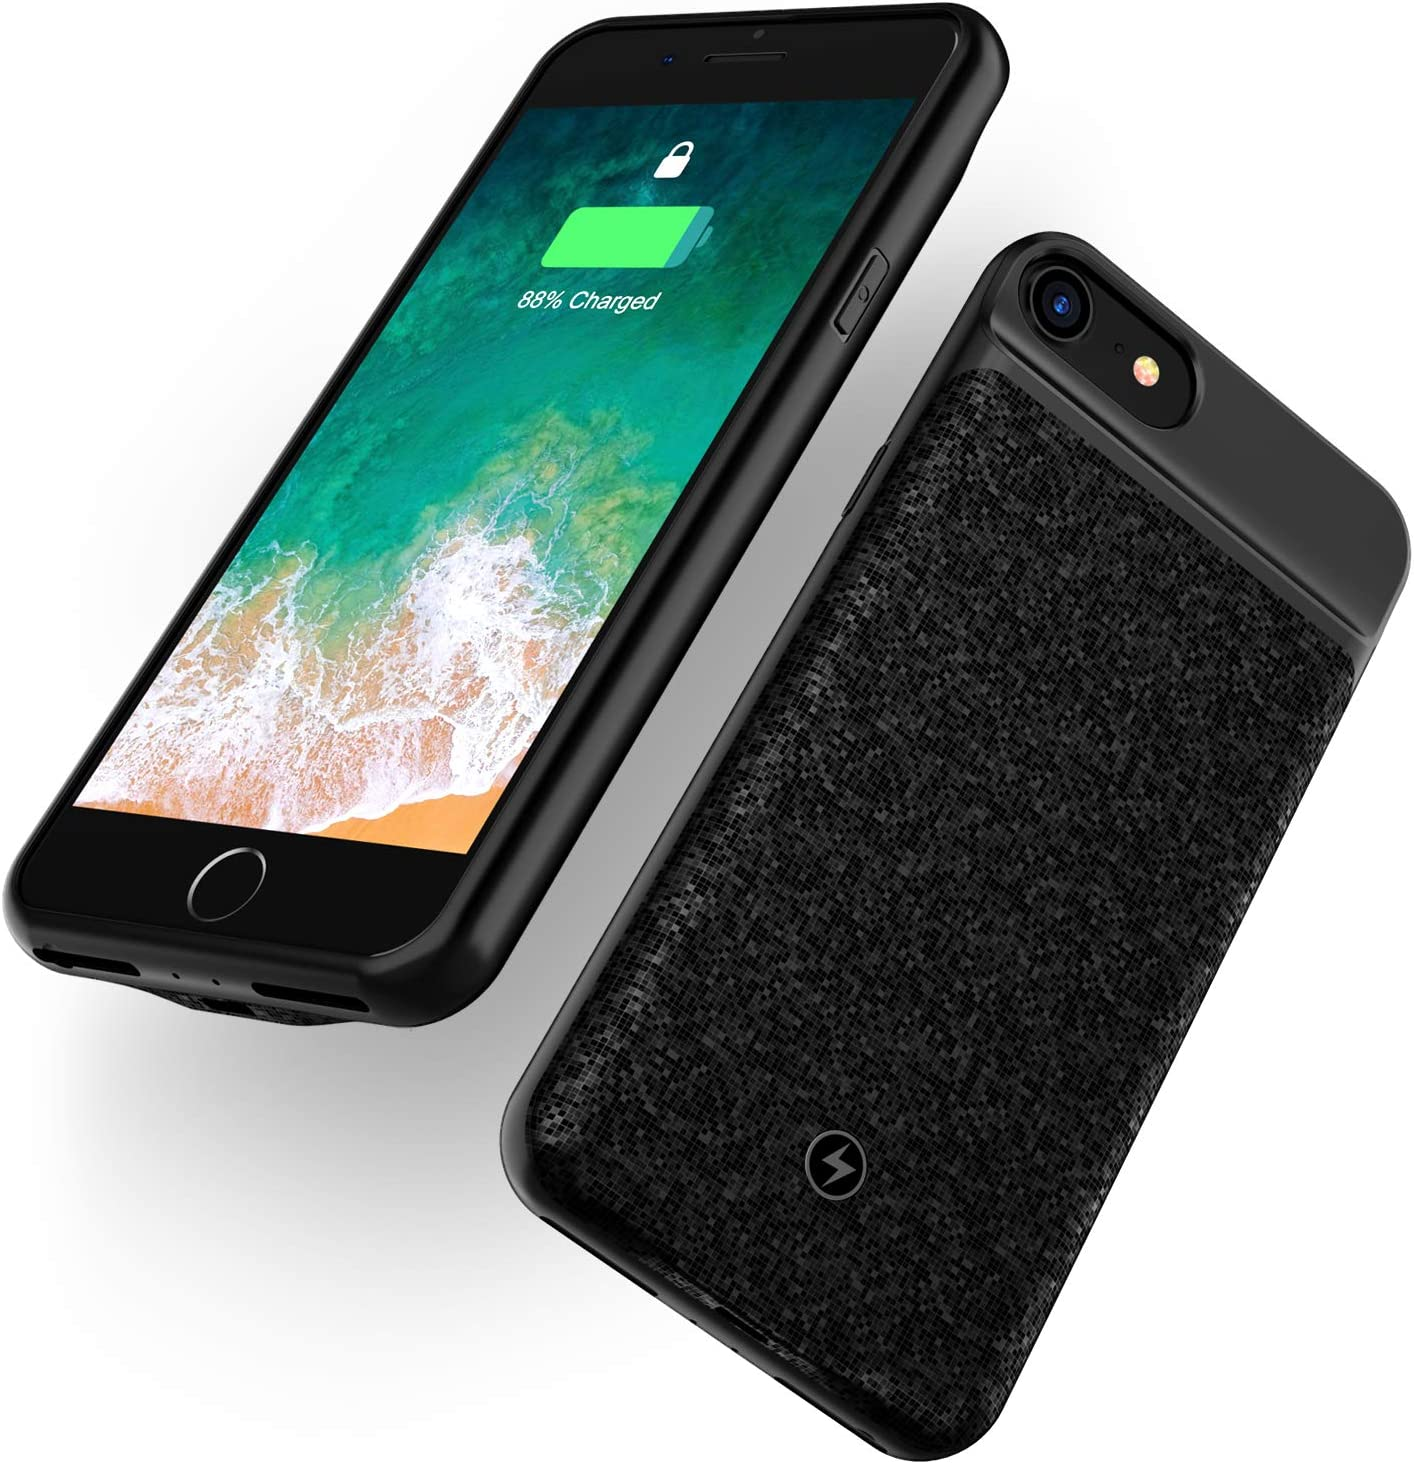 WELUV Wireless Battery Case for iPhone 8 Plus 7 Plus 6s Plus 6 Plus 4000mAh Ultra Slim Rechargeable Cover Support Headphone Qi Mosaic Wireless Charging Backup Extended Protective Shell Black 5.5 inch